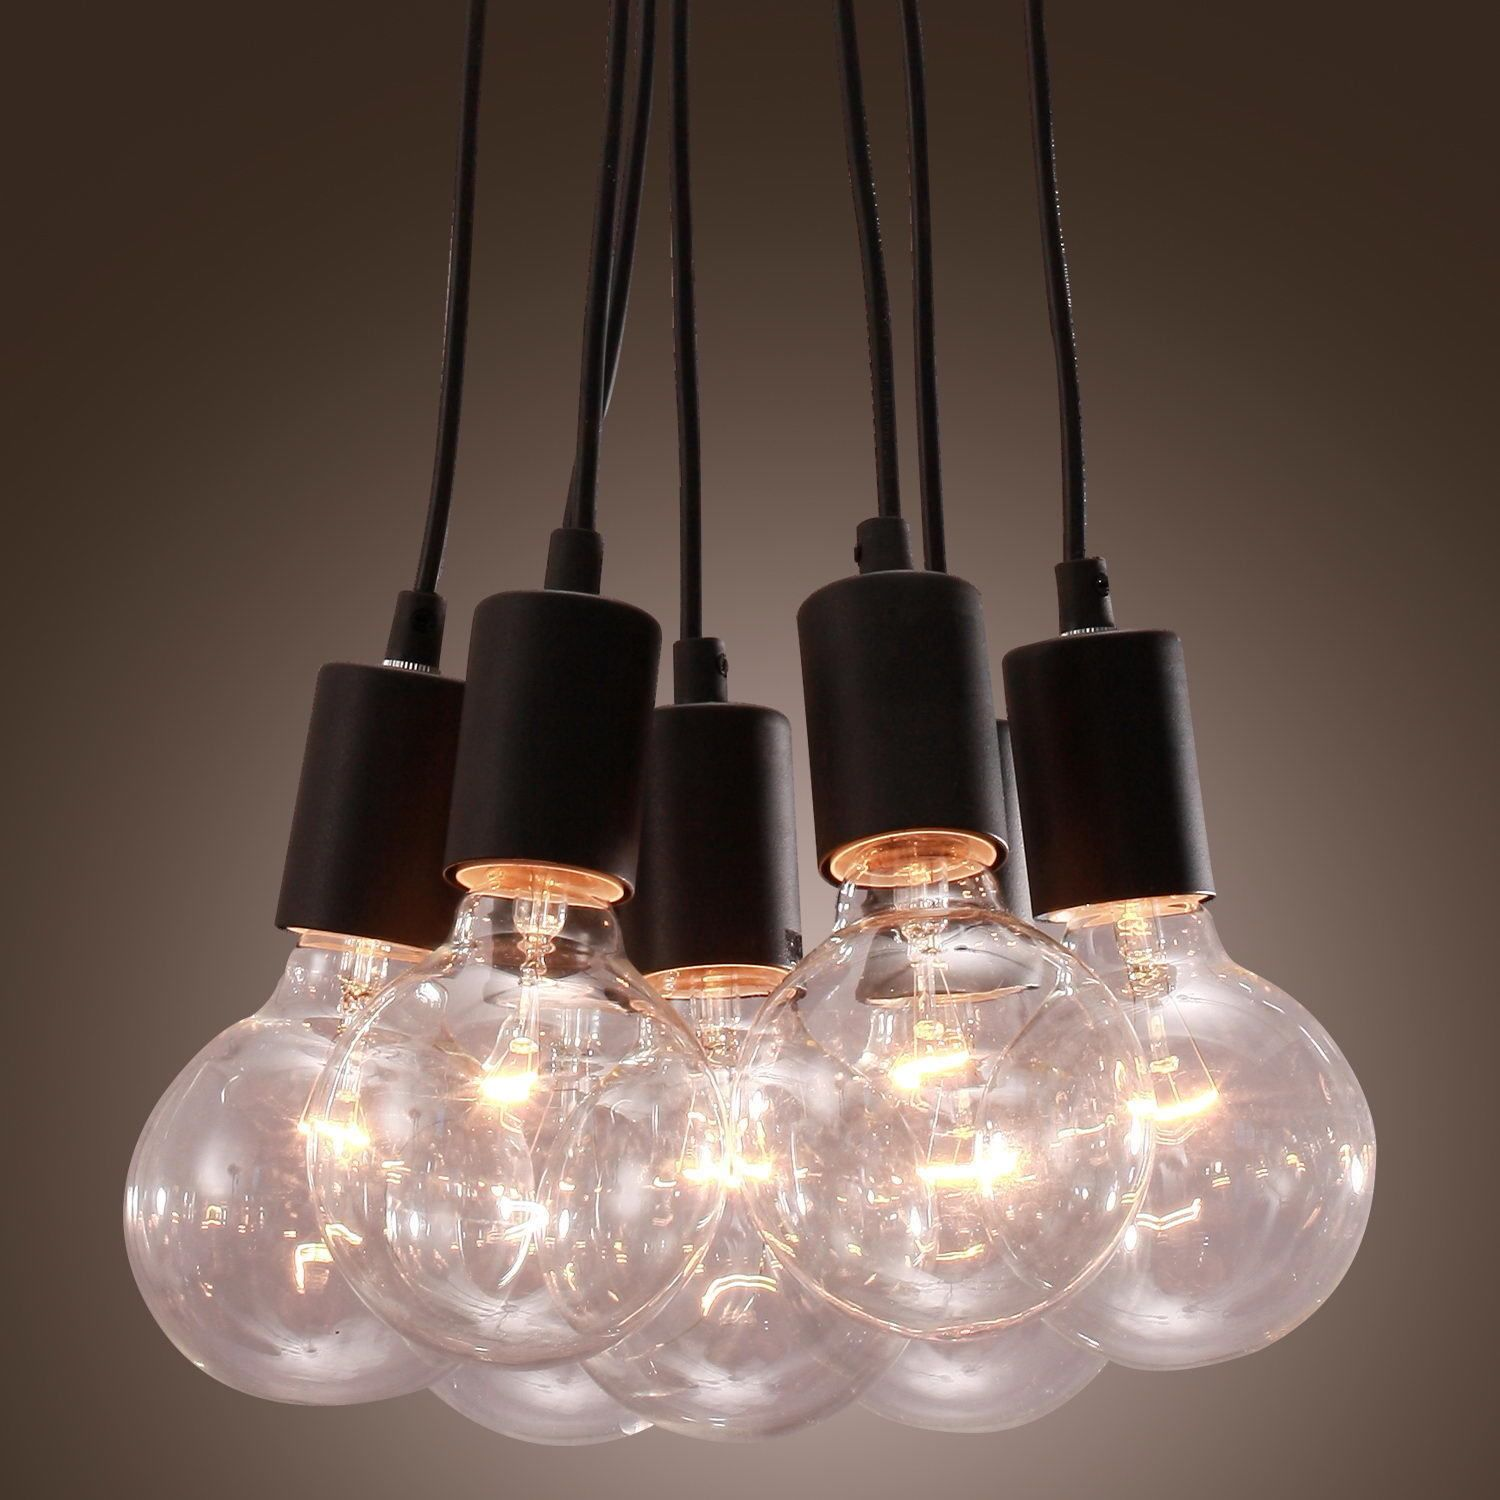 LightInTheBox Classic Pendant Light With 7 Lights Vintage Ceiling Fixture Chandeliers For Living Room